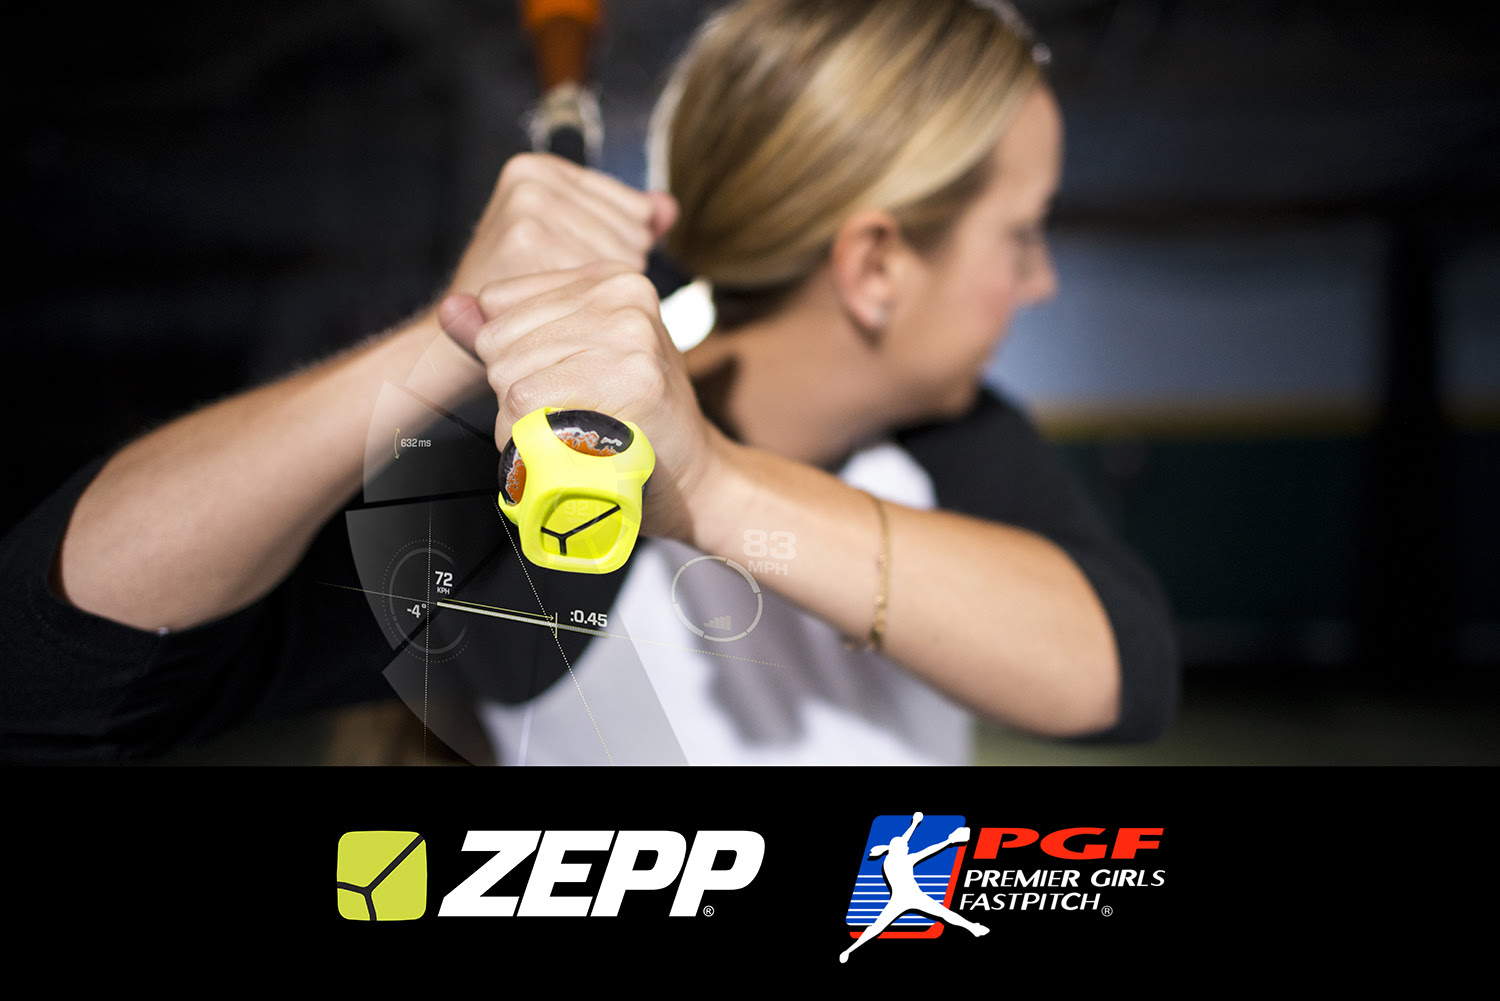 PGF Partners with Zepp Labs to Use Sports Sensor Tech